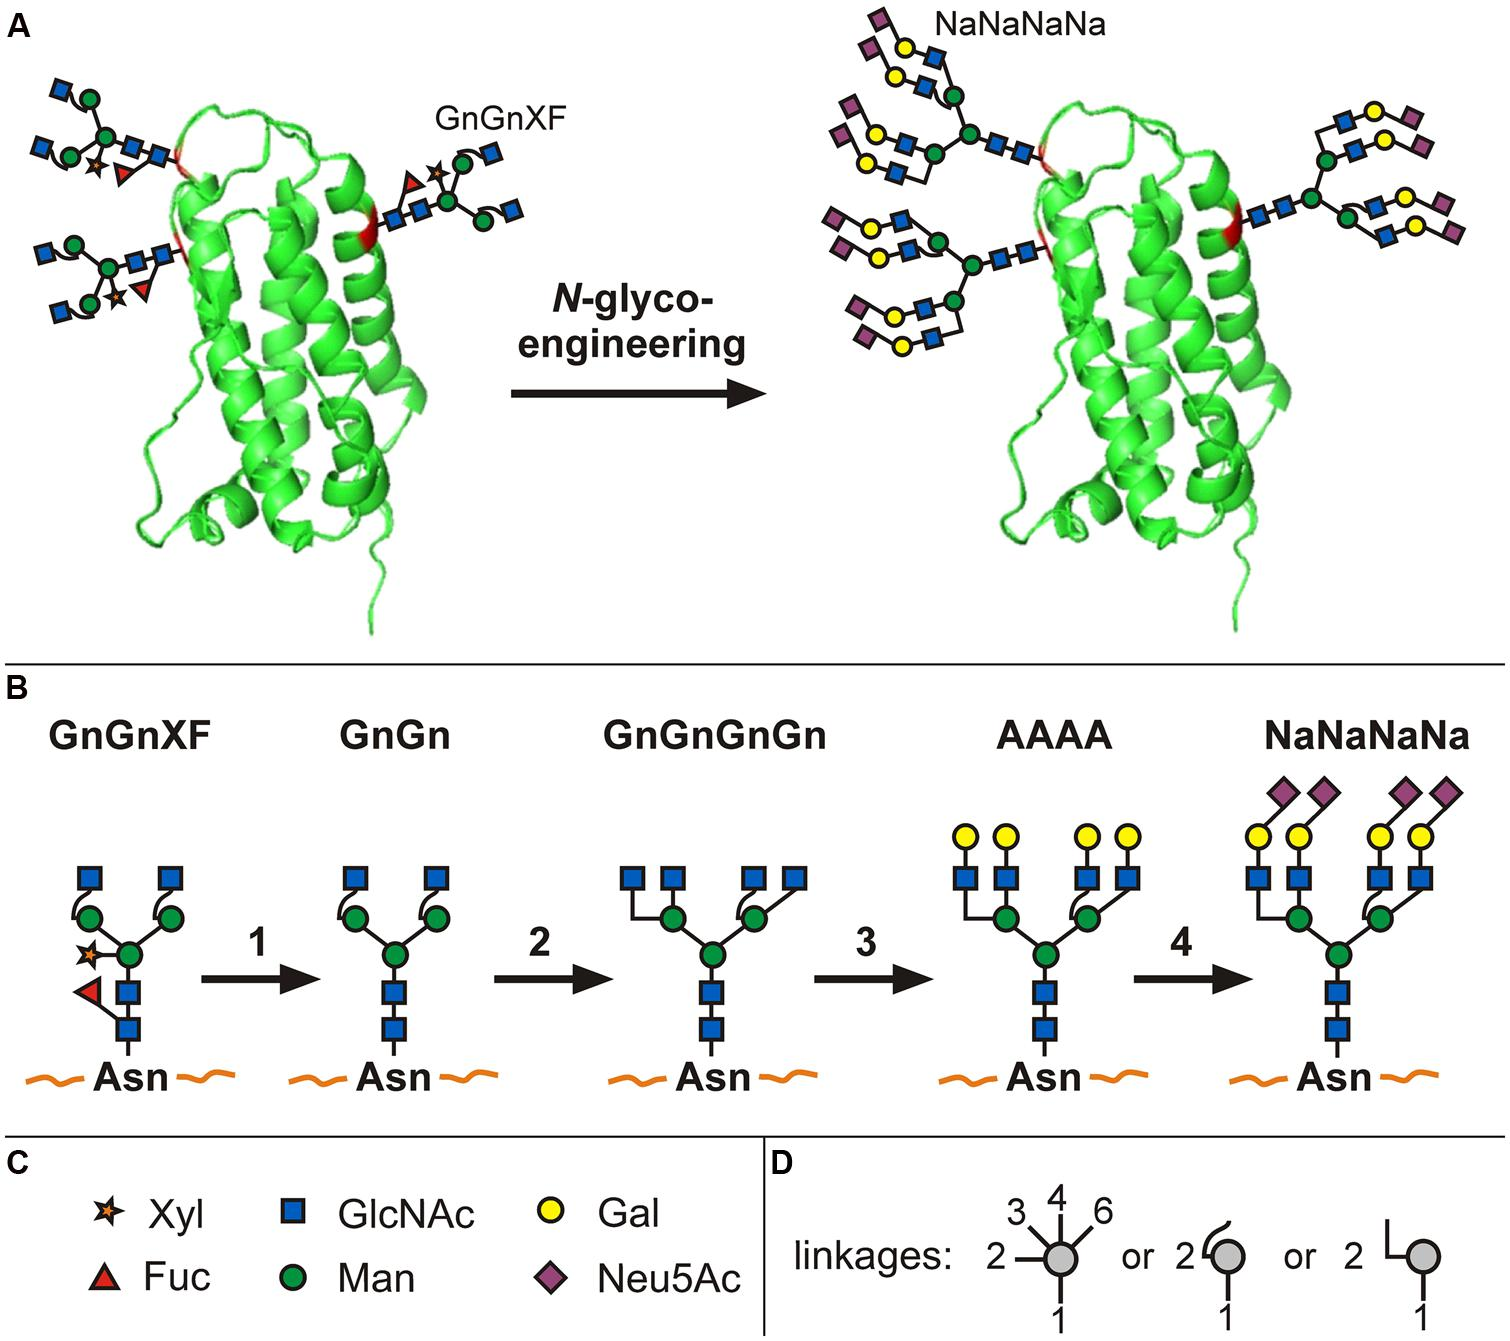 an introduction to the glycoprotein erythropoietin Red blood cell production is regulated by the glycoprotein hormone  erythropoietin  on the contrary, the introduction of additional n-glycans into  recombinant.